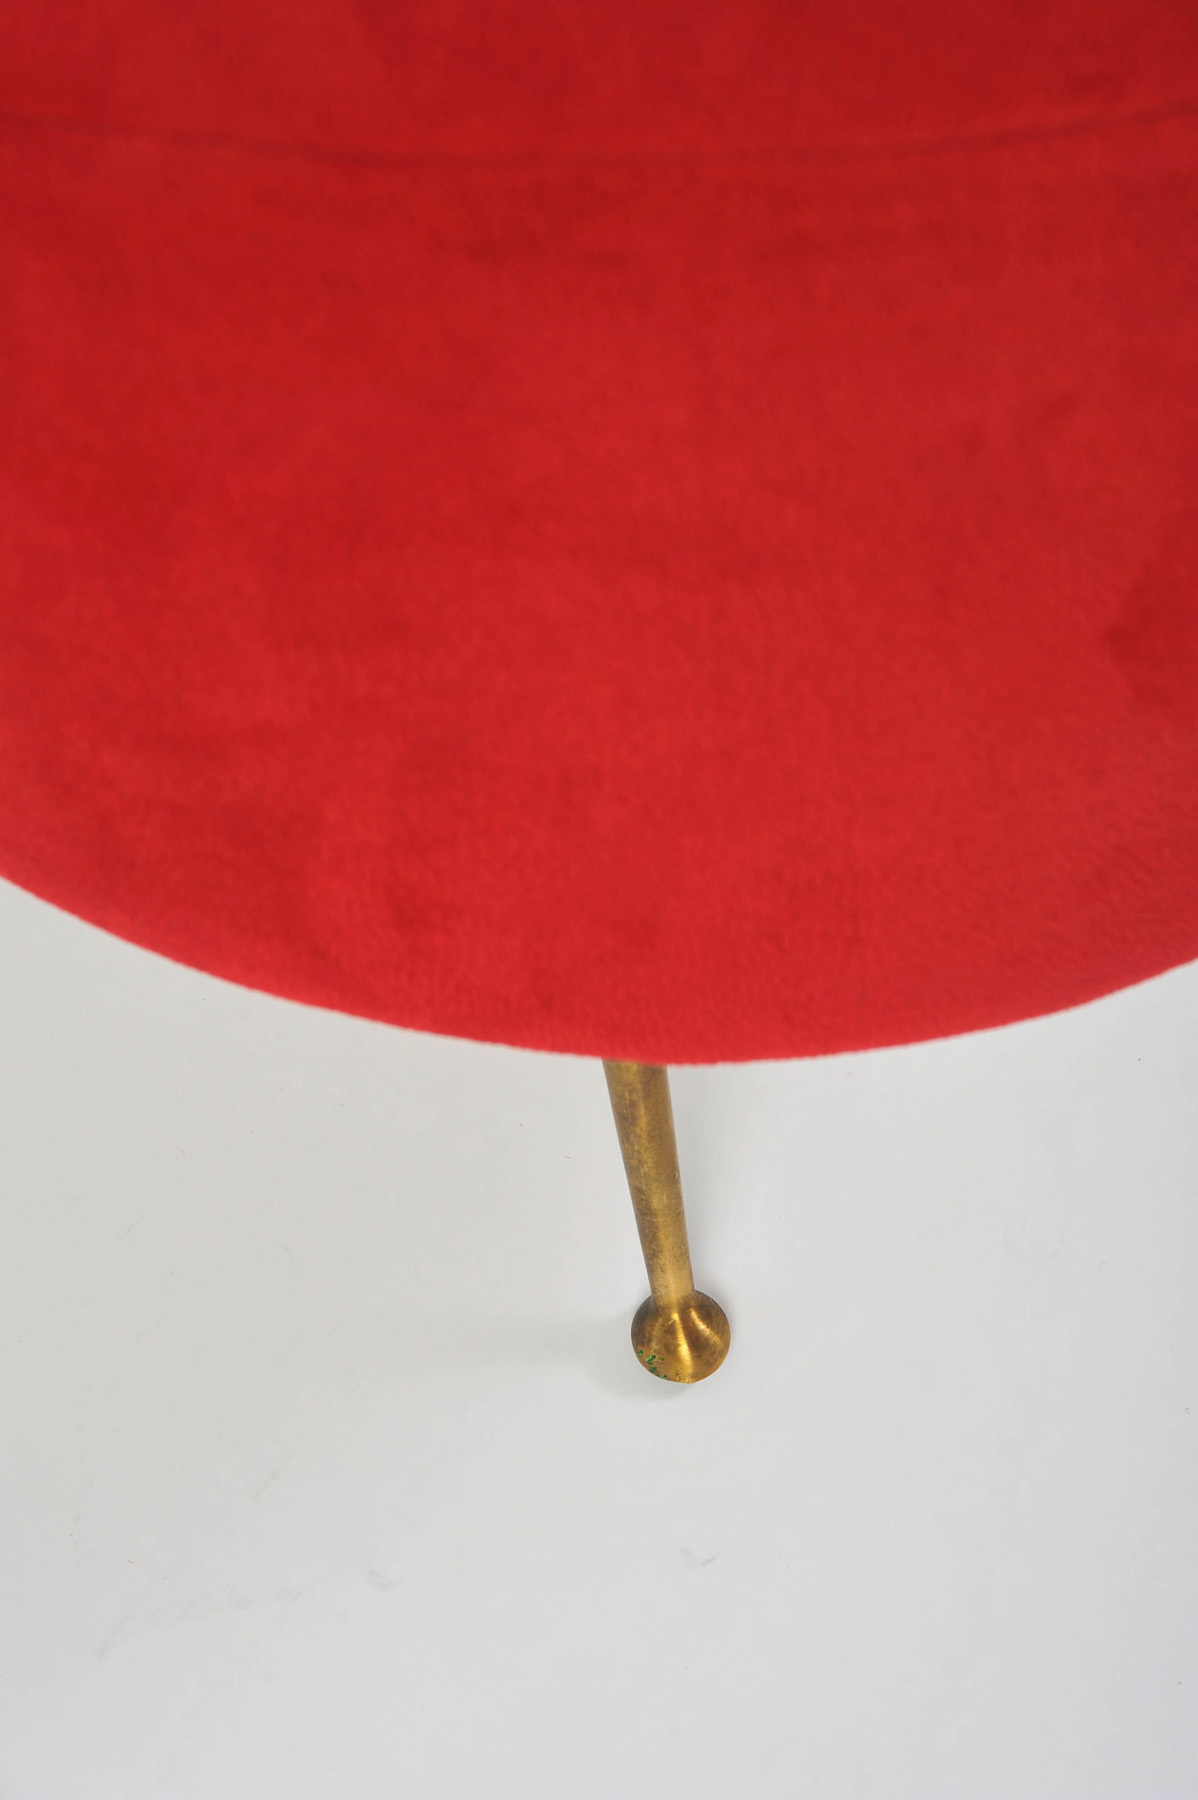 The image for Red Stool 03